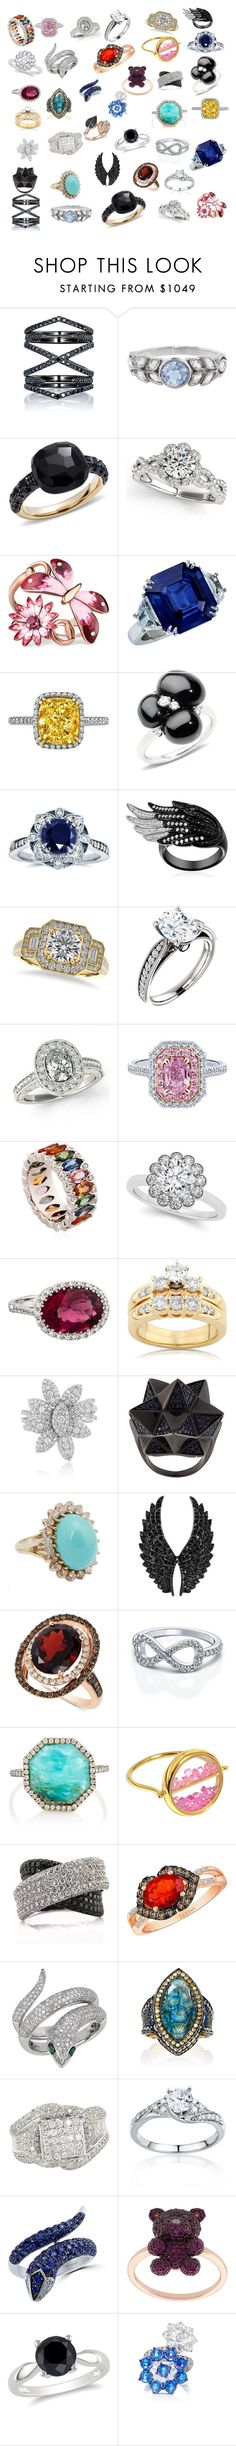 """My Favorite Rings"" by galactic-girl ❤ liked on Polyvore featuring Eva Fehren, Cathy Waterman, Pomellato, Gucci, Kobelli, Allurez, Niquesa, Effy Jewelry, John Brevard and Vintage"